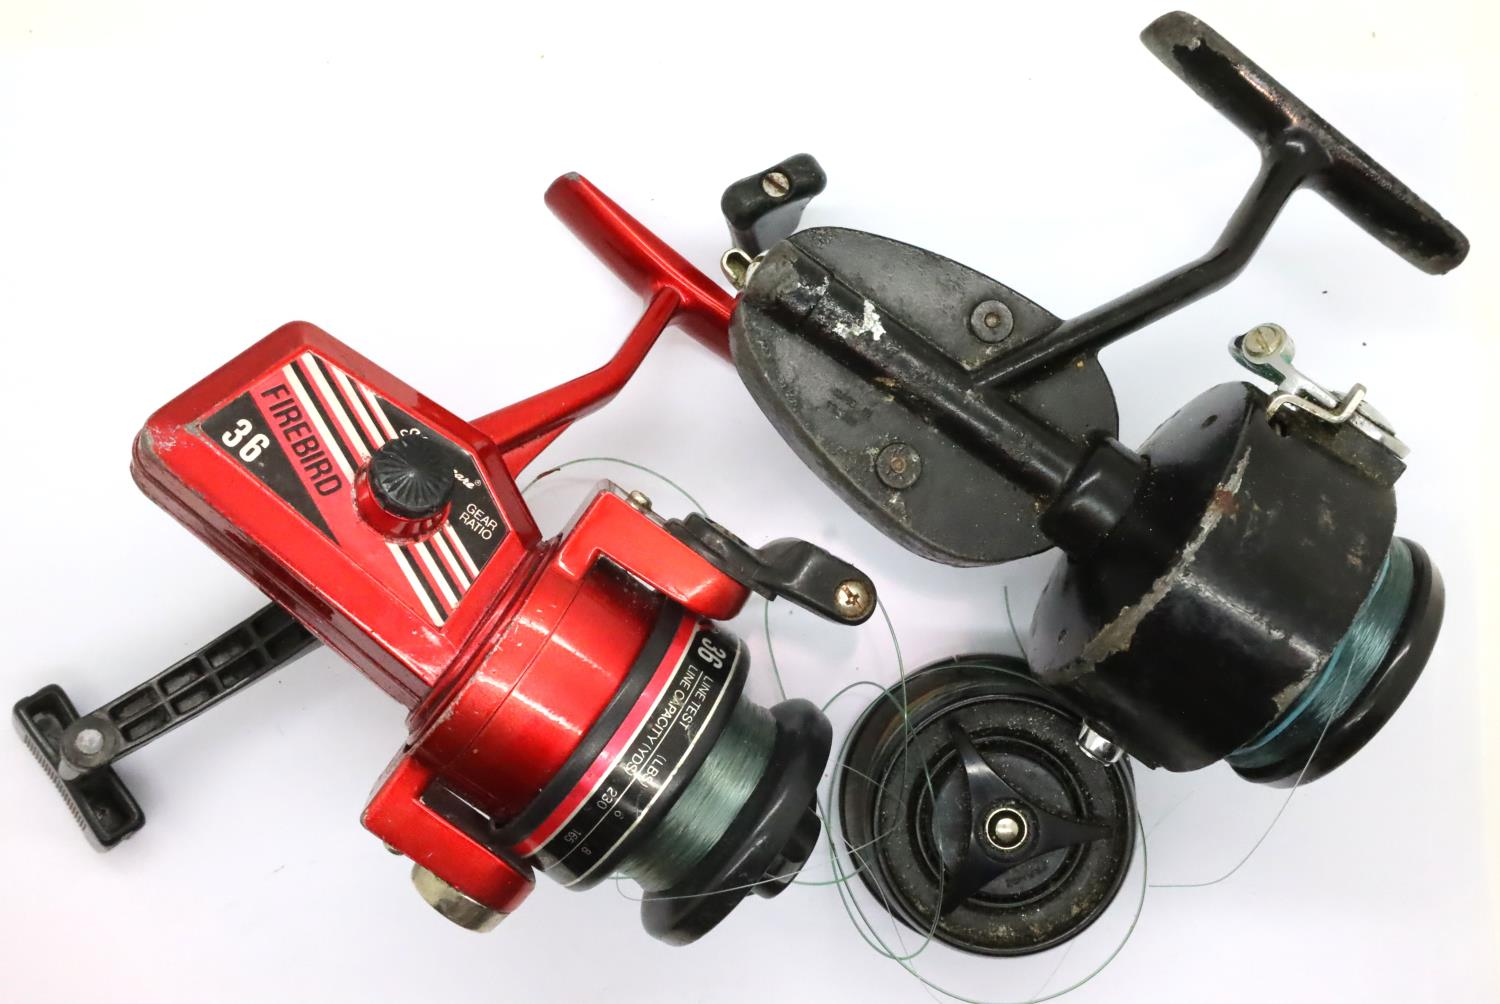 A Shakespeare Firebird 36 fishing reel and extras. P&P Group 2 (£18+VAT for the first lot and £3+VAT - Image 2 of 2